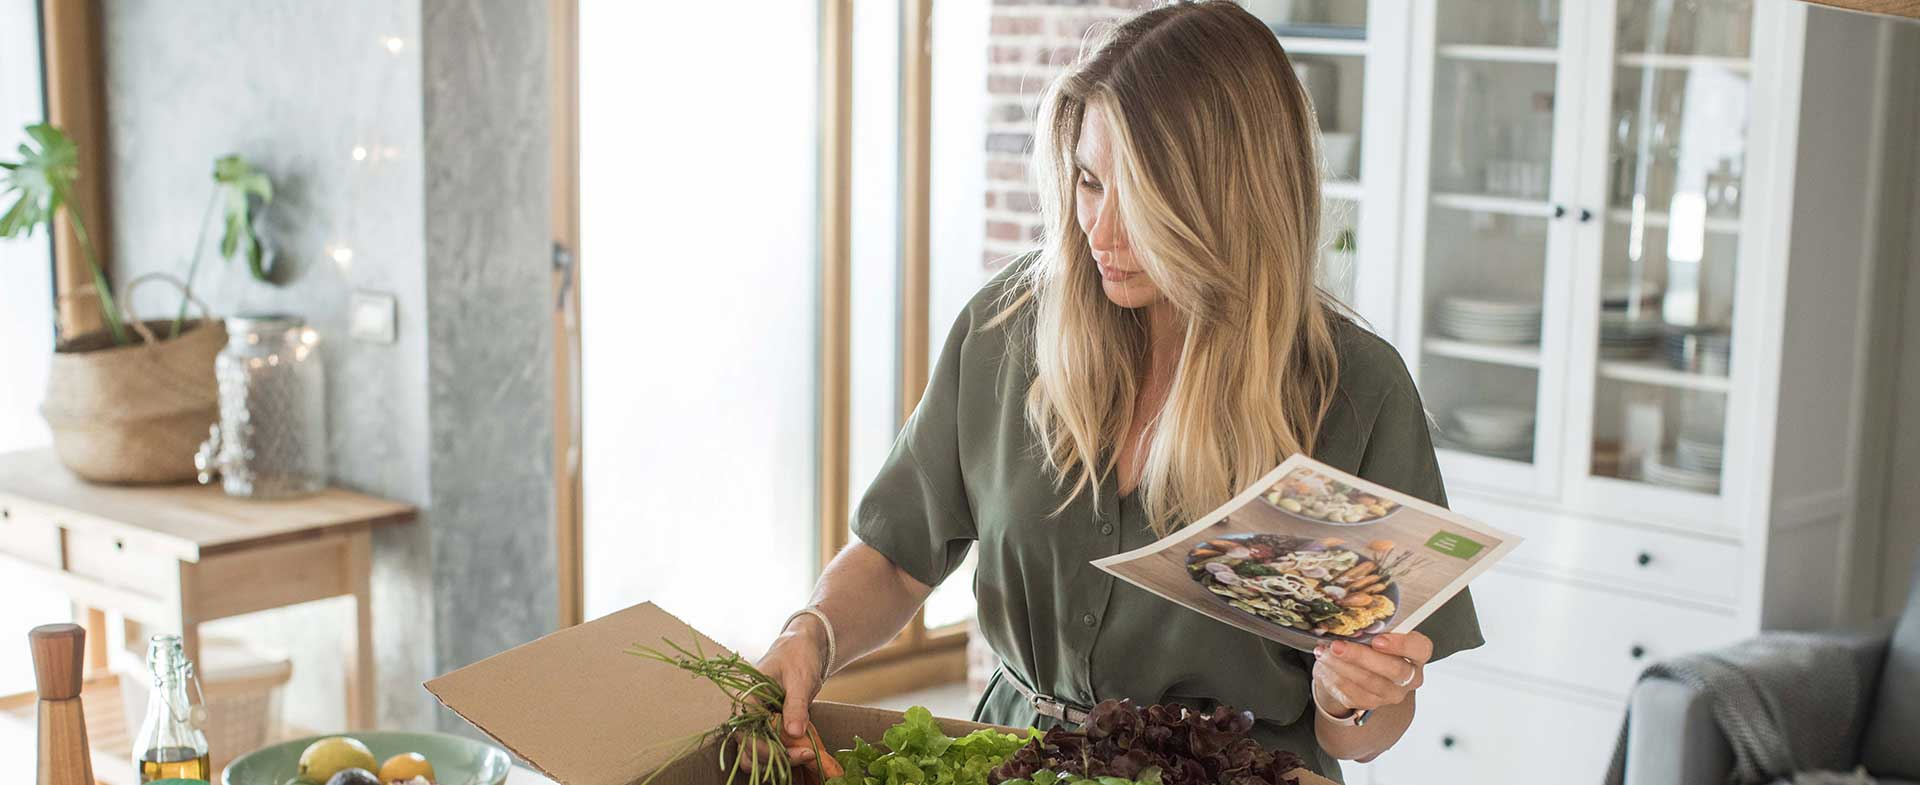 Woman opening meal kit and reviewing recipe